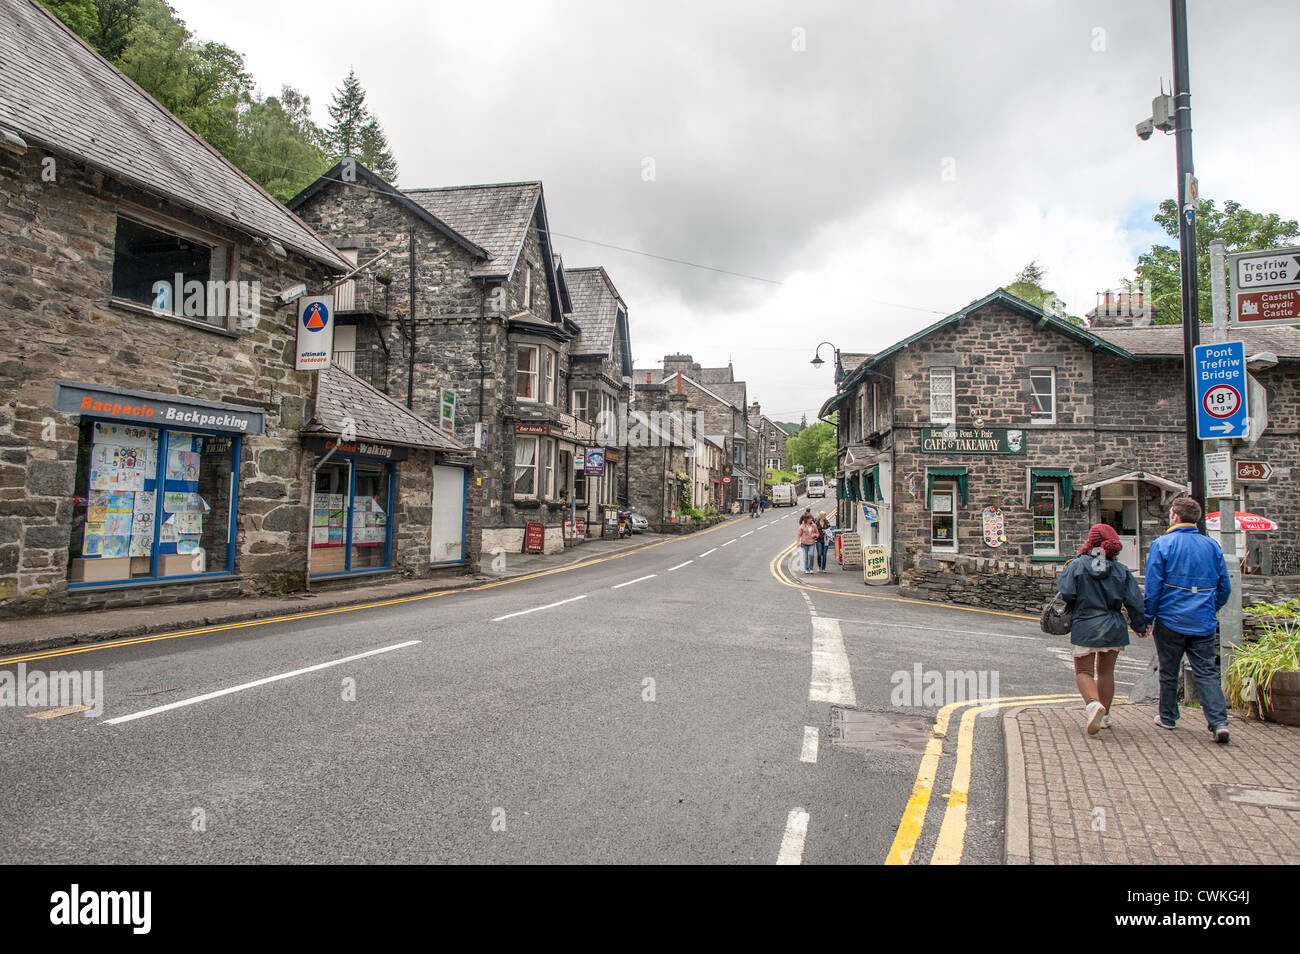 betws y coed muslim From the lake, we walked around the gywndir forest taking in the views and headed back to the main town of betws y coed with a tired hound and tired humans, we stopped off for a cheeky pint and some lunch before going home.